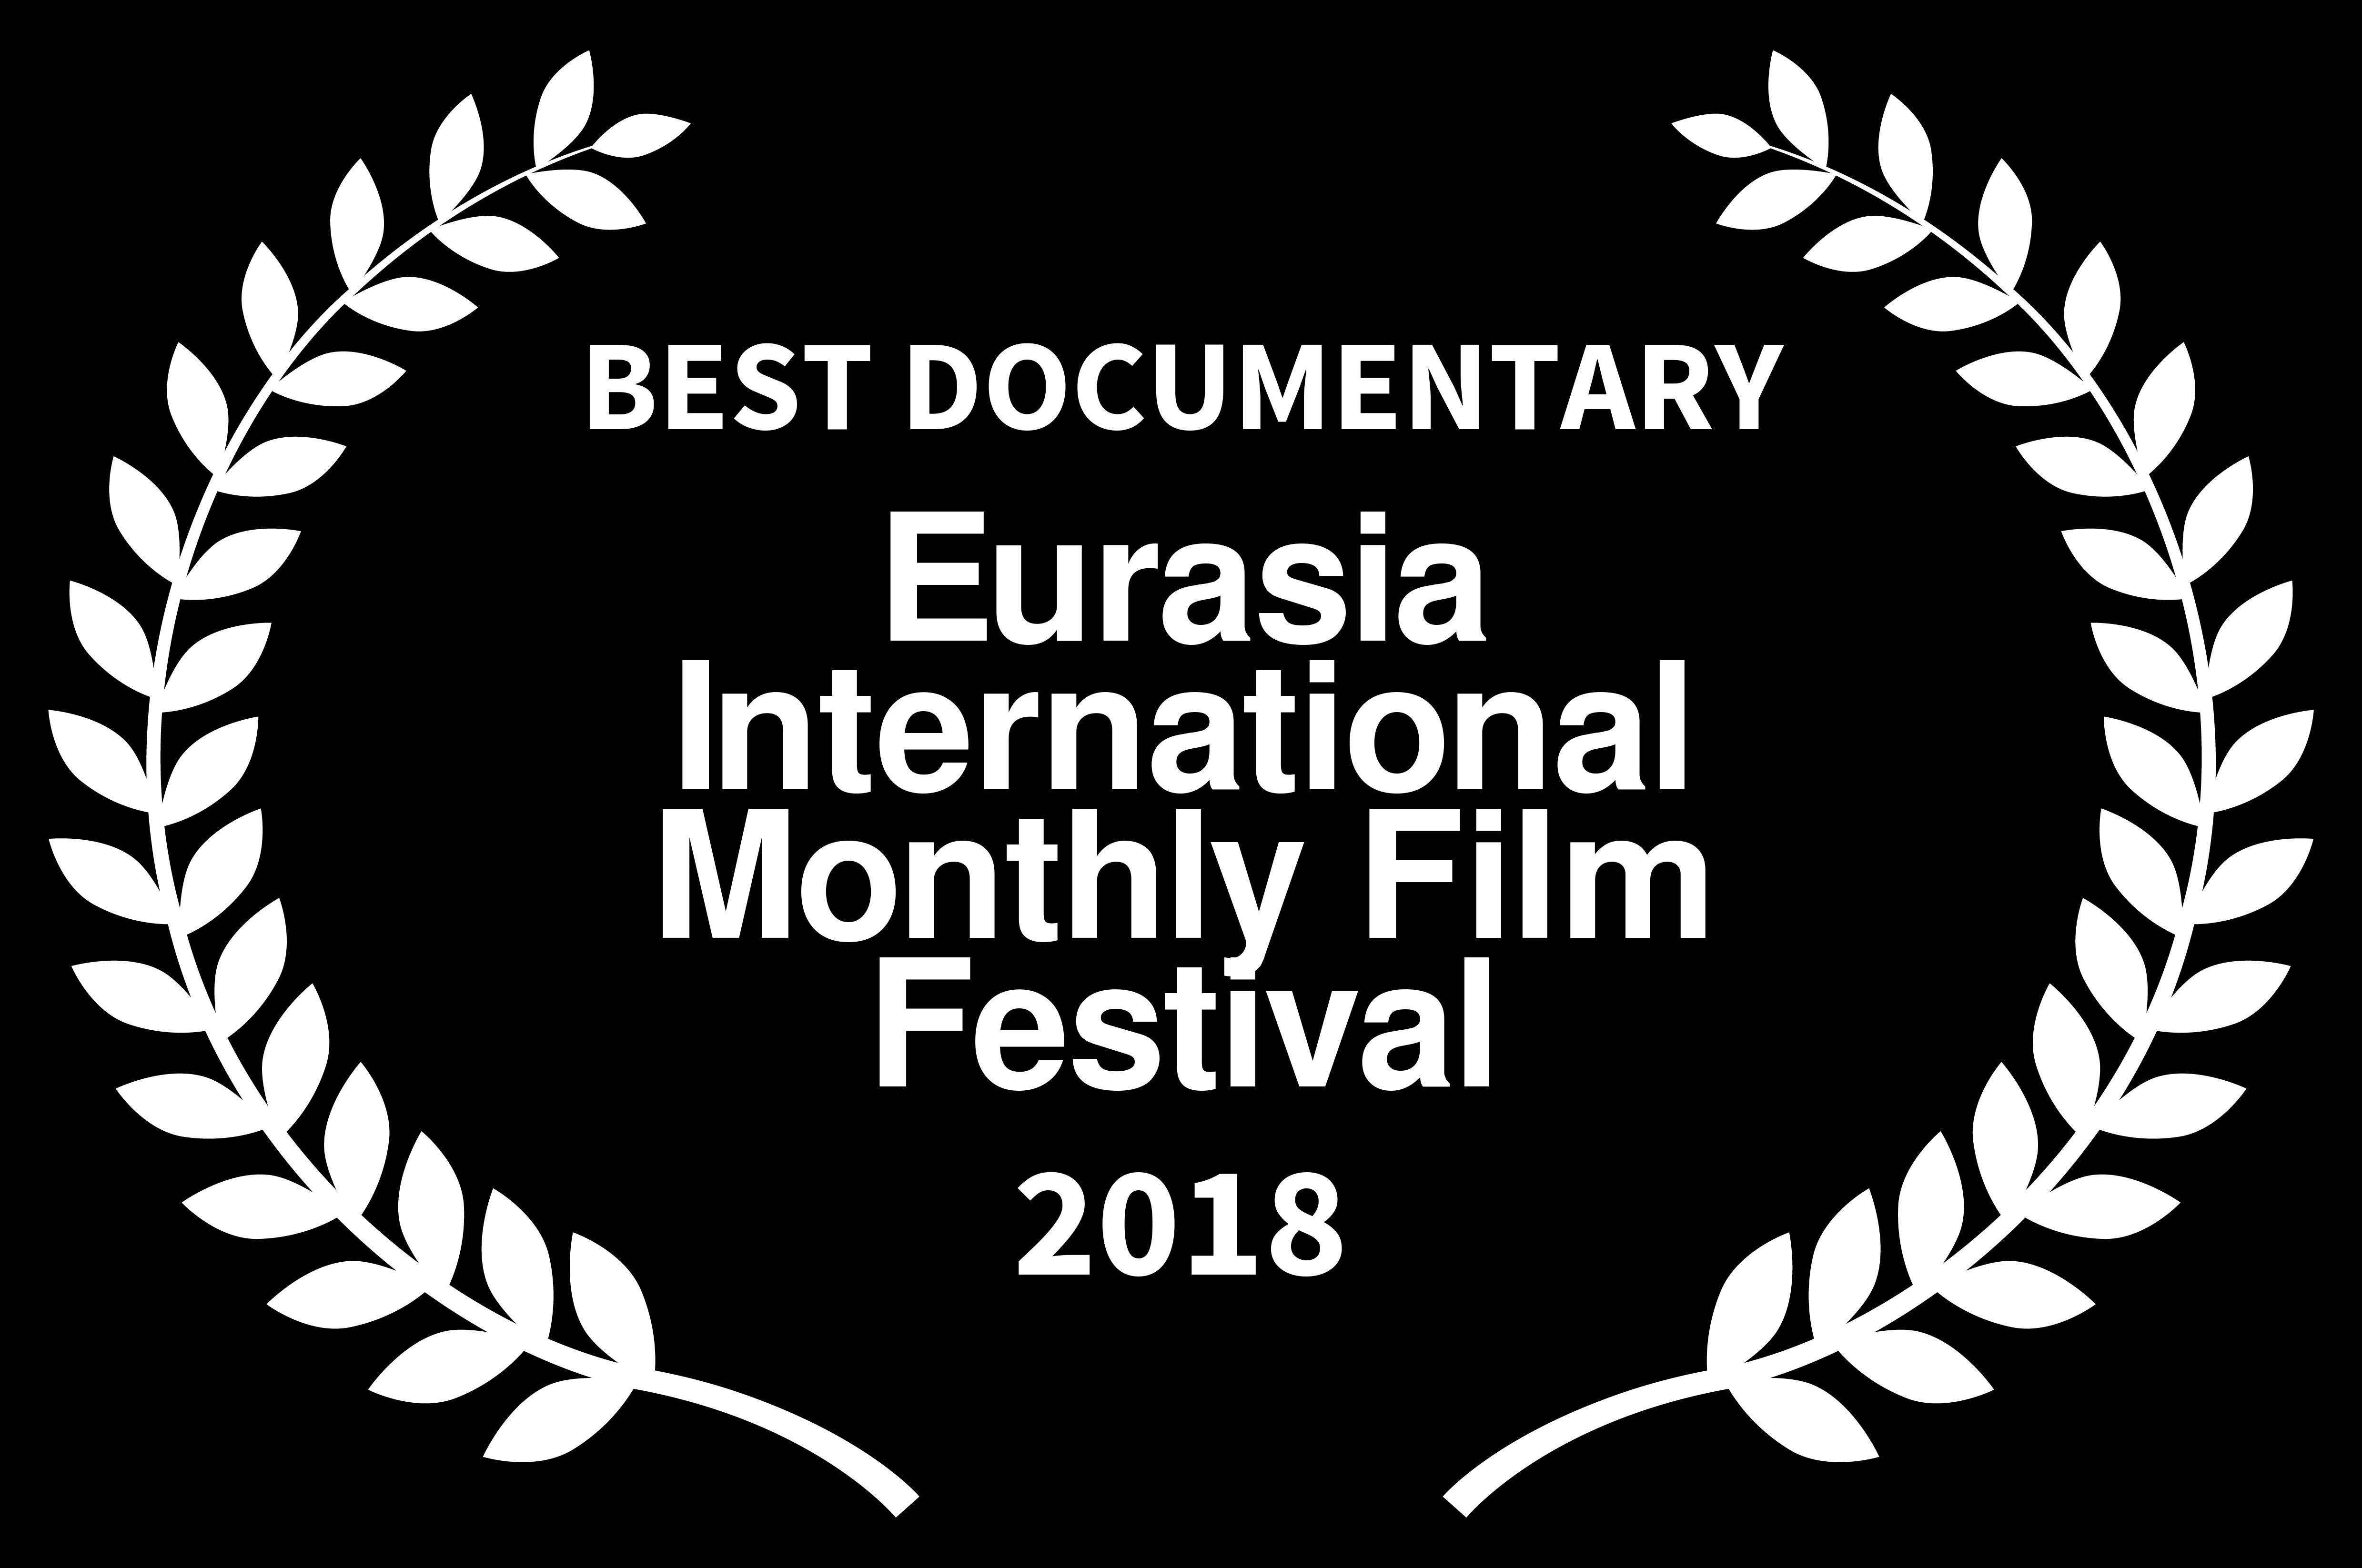 BEST_DOCUMENTARY award Operation Wedding anat zalmanson kuznetsov eurasia 2018 black